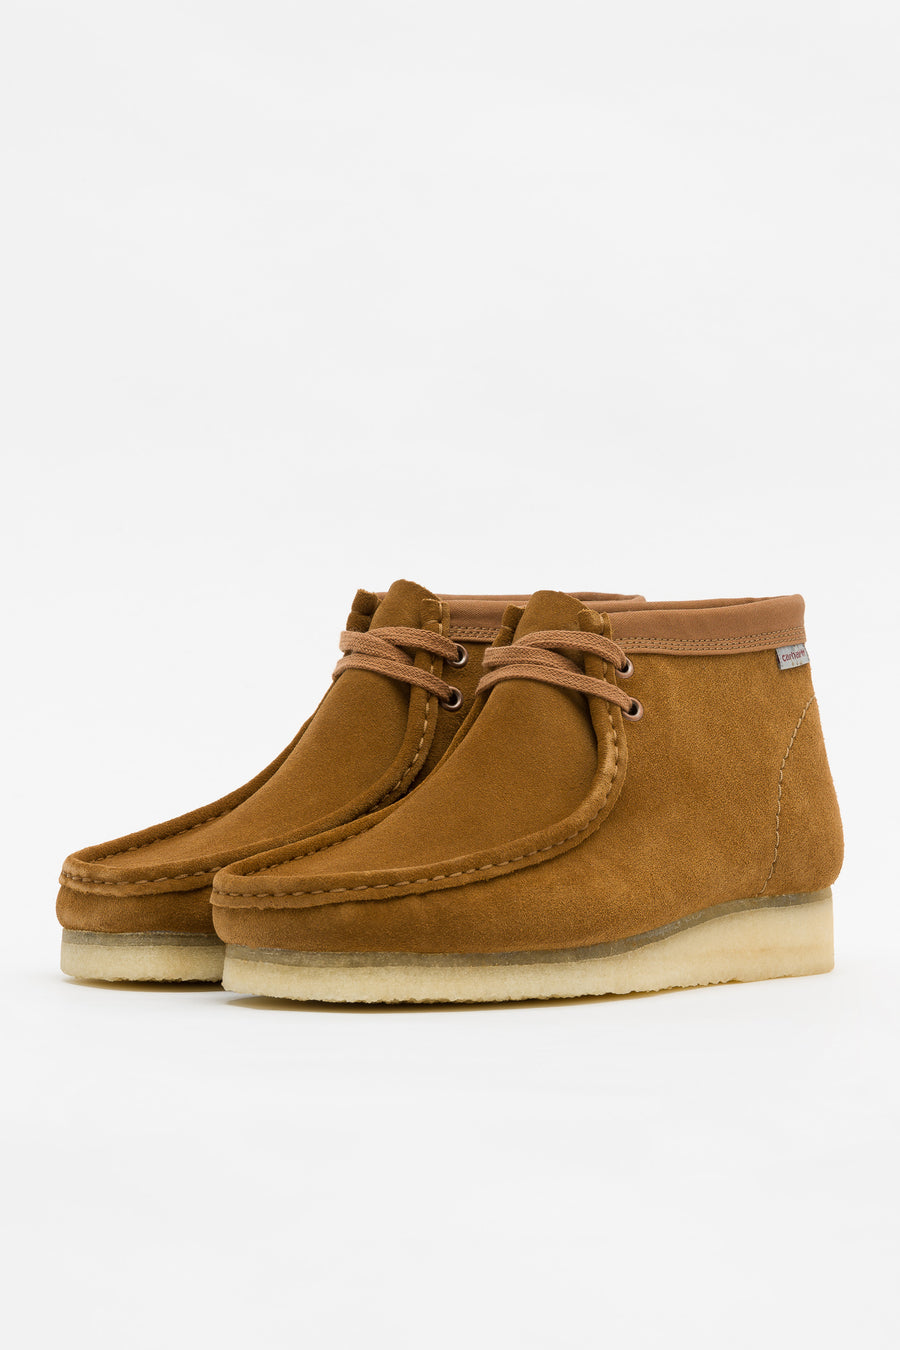 Clarks Carhartt WIP Wallabee Boot in Brown - Notre